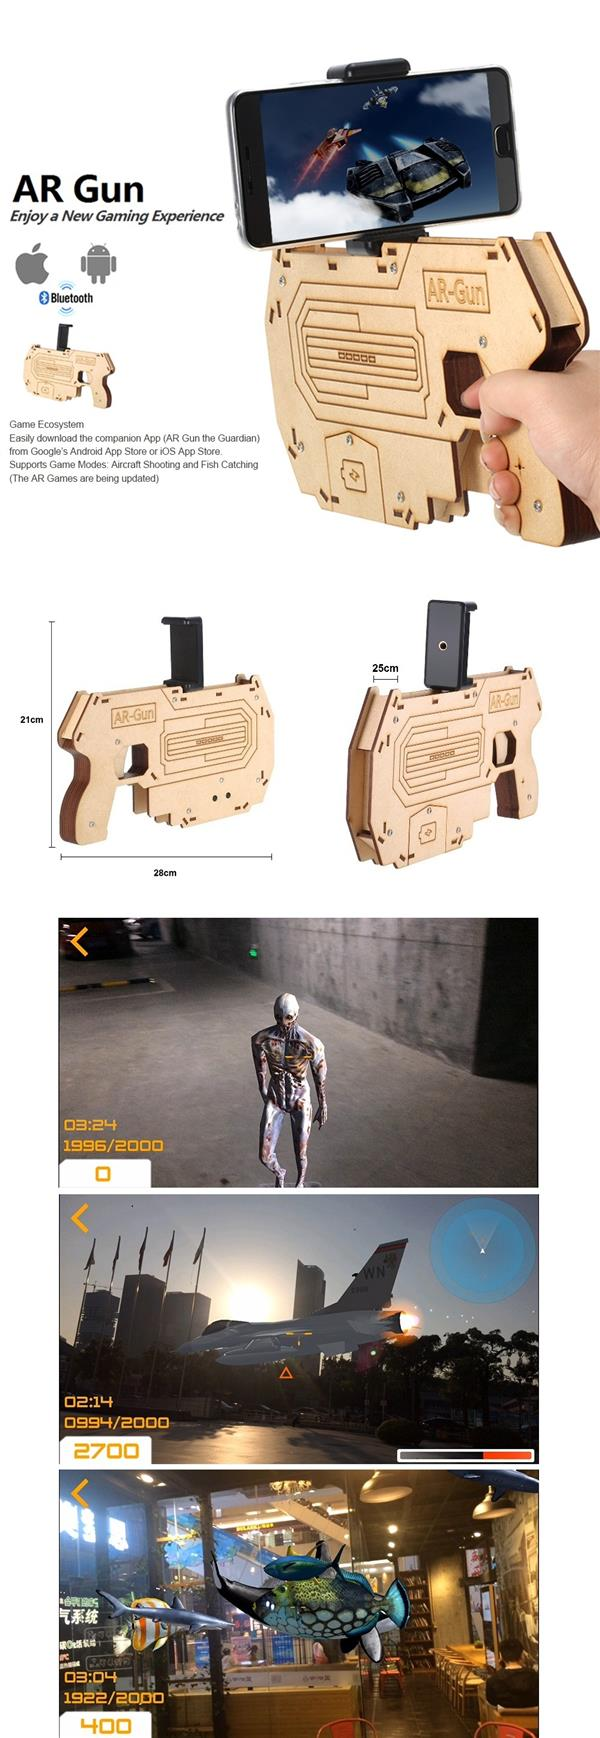 Portable Augmented Readlity AR Gun for Smartphone